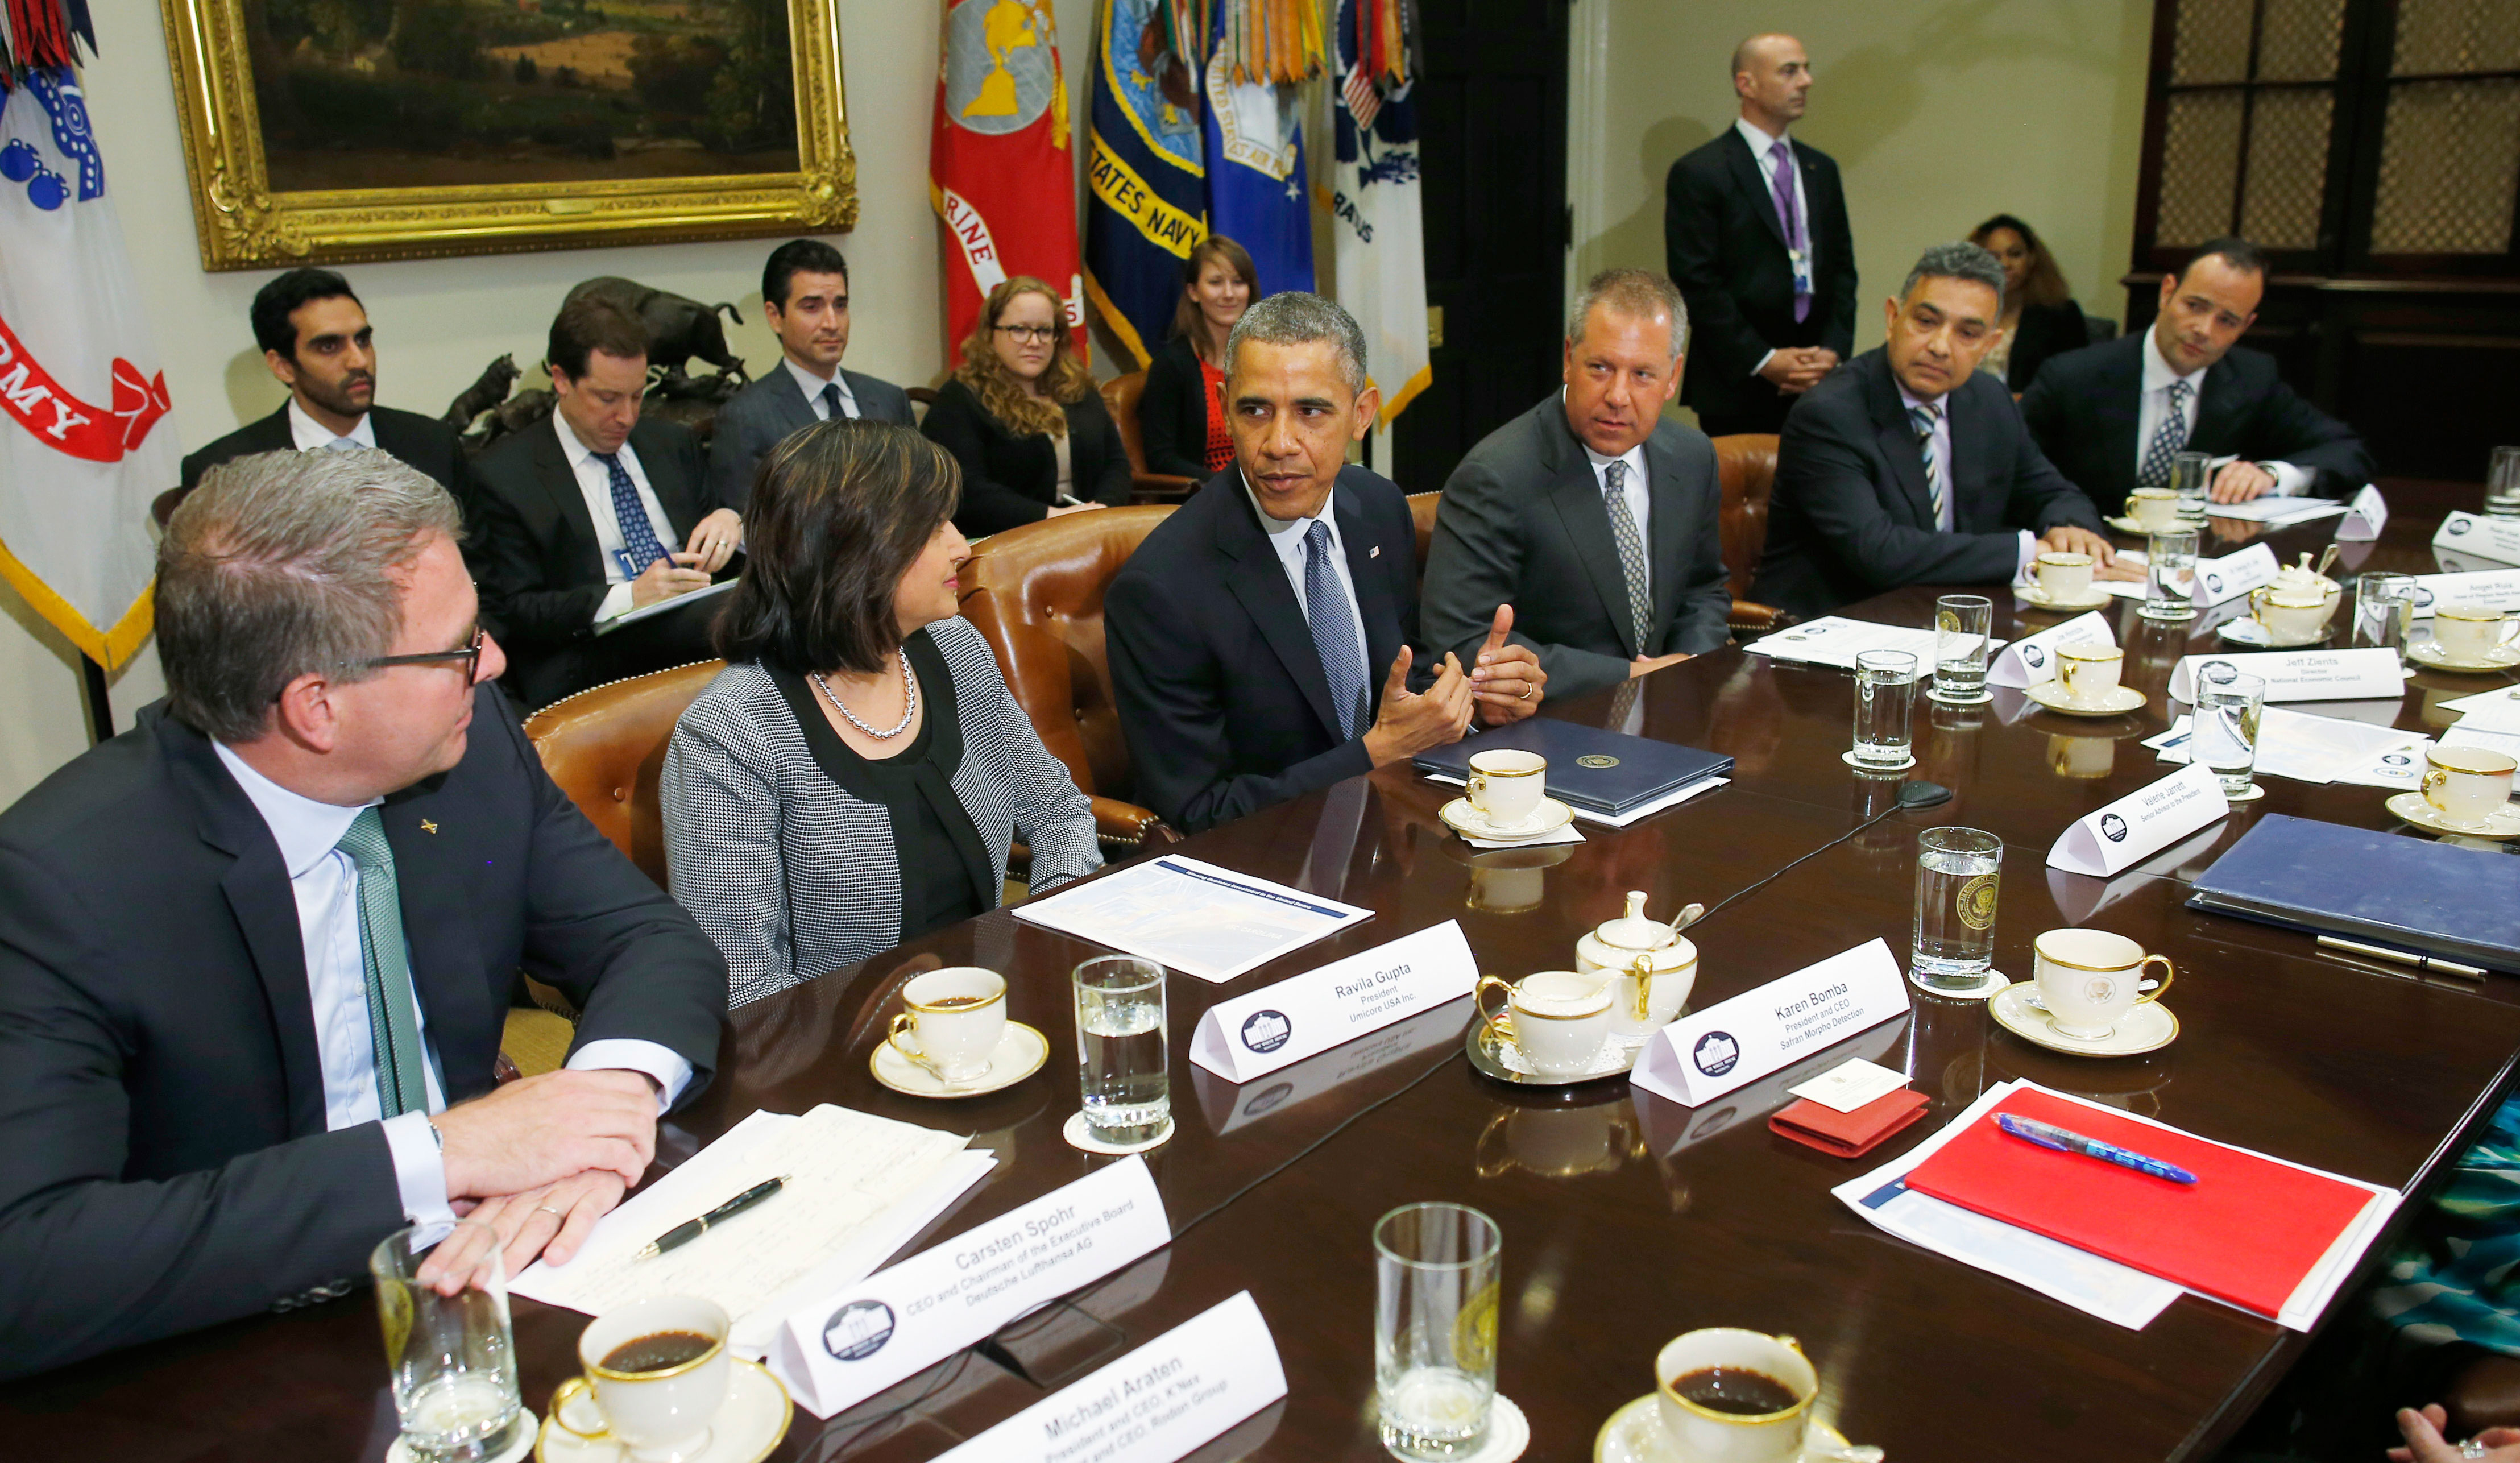 President Barack Obama meets with business leaders in the White House